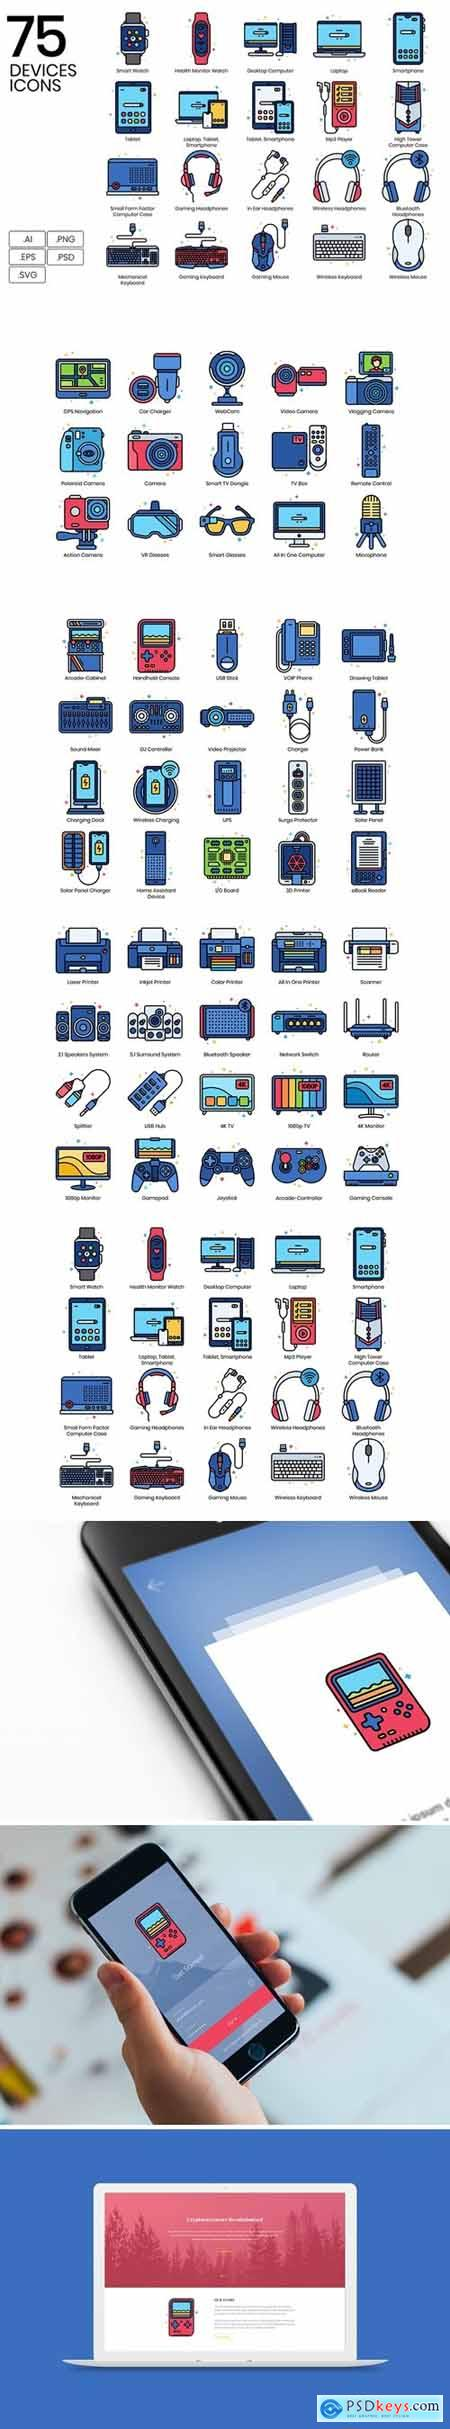 75 Devices Icons - Vivid Series